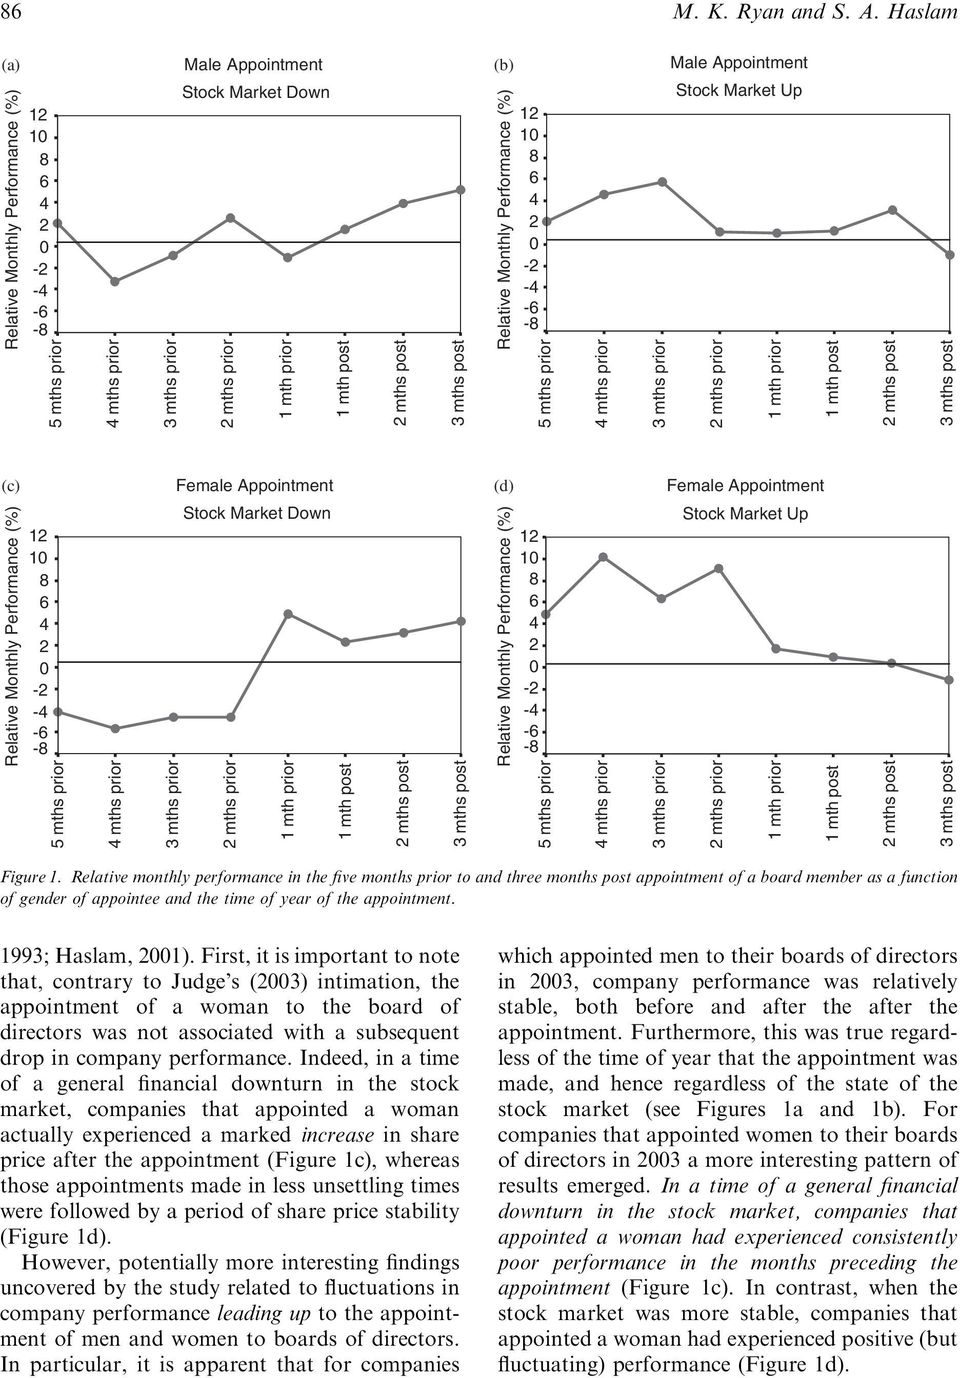 post (b) Relative Monthly Performance (%) 12 10 8 6 4 2 0-2 -4-6 -8 5 mths prior 4 mths prior Male Appointment Stock Market Up 3 mths prior 2 mths prior 1 mth prior 1 mth post 2 mths post 3 mths post